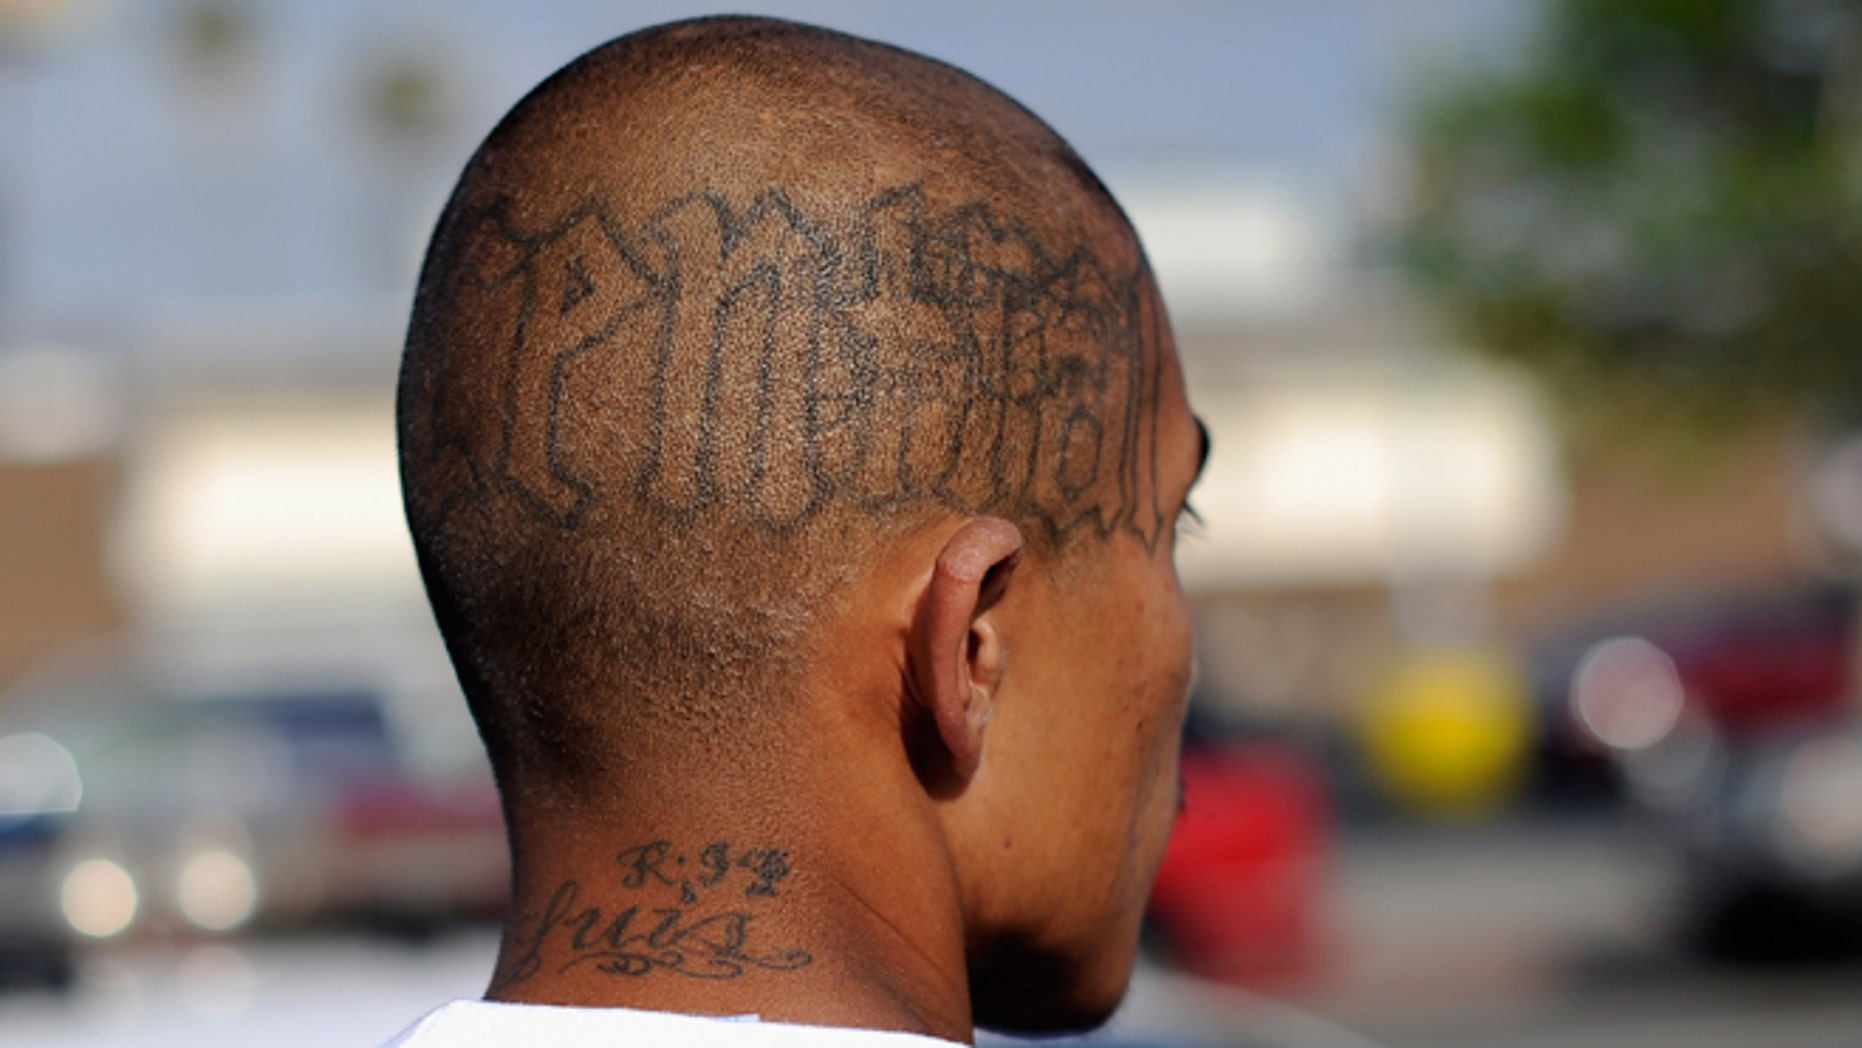 """LOS ANGELES, CA - APRIL 29:  Tattoos are seen on the head of a twenty-year old """"Street Villains"""" gang member who was arrested by Los Angeles Police Department officers from the 77th Street division on April 29, 2012 in Los Angeles, California. The 77th Street division patrol the same neighborhood that truck driver Reginald Denny was nearly beaten to death by a group of black assailants at the intersection of Florence and Normandie Avenues. It's been 20 years since the verdict was handed down in the Rodney King case that sparked infamous Los Angeles riots.  (Photo by Kevork Djansezian/Getty Images)"""